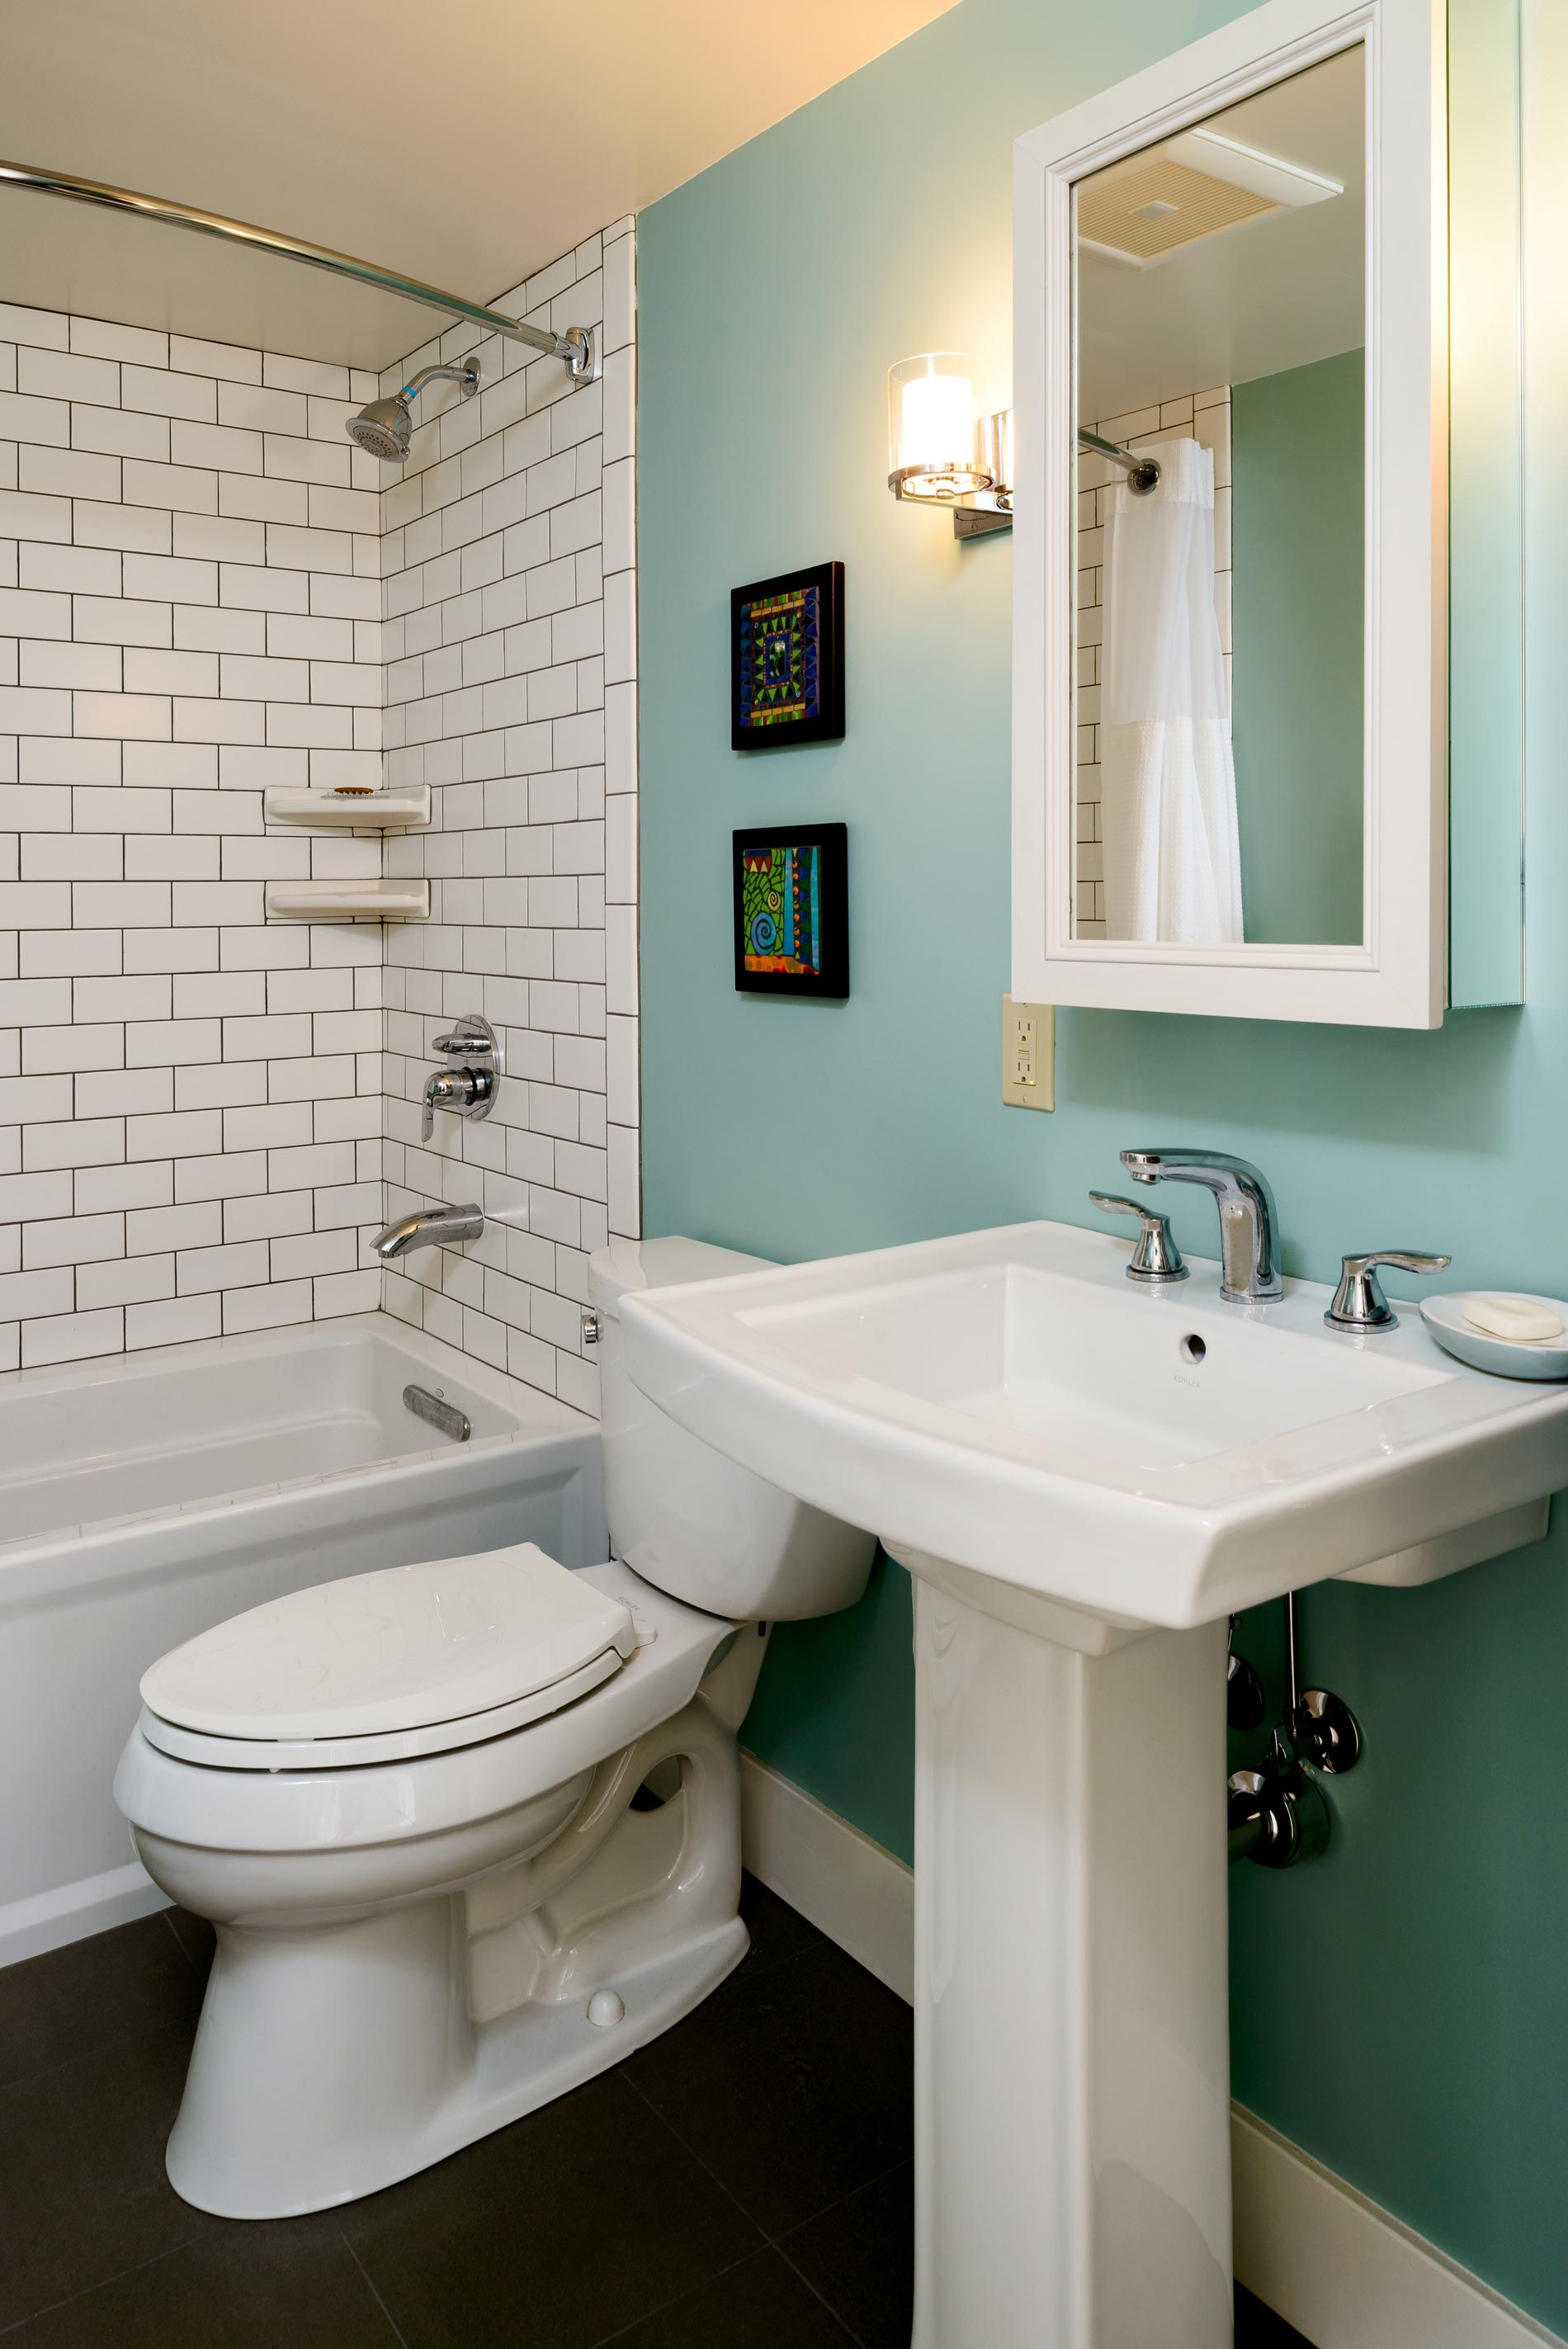 Bathroom Remodel | Retro Bathroom | Modern Bathroom | Subway Tile ...